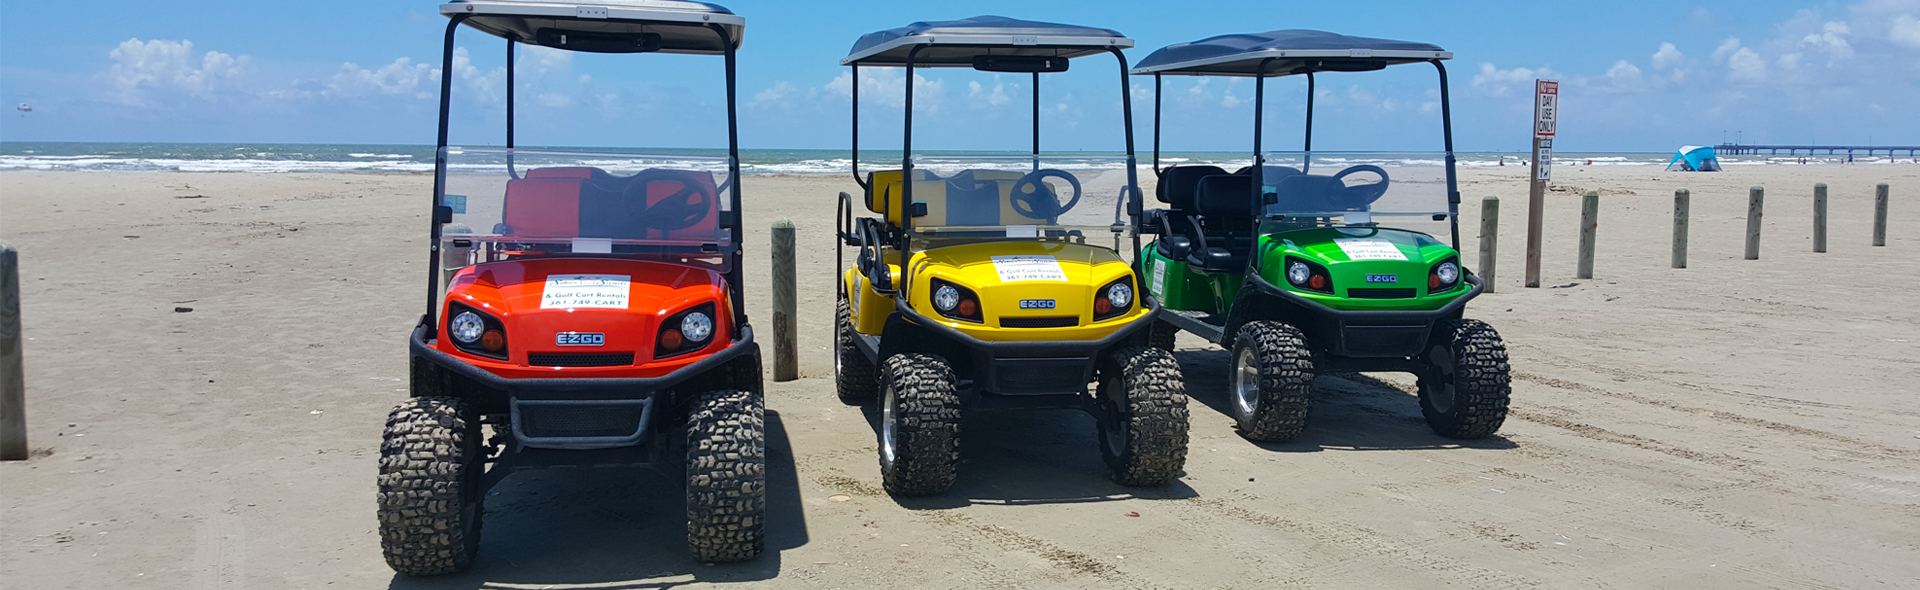 Three Silver Sands Golf Cart Rentals rental golf carts on the Port Aransas beach.